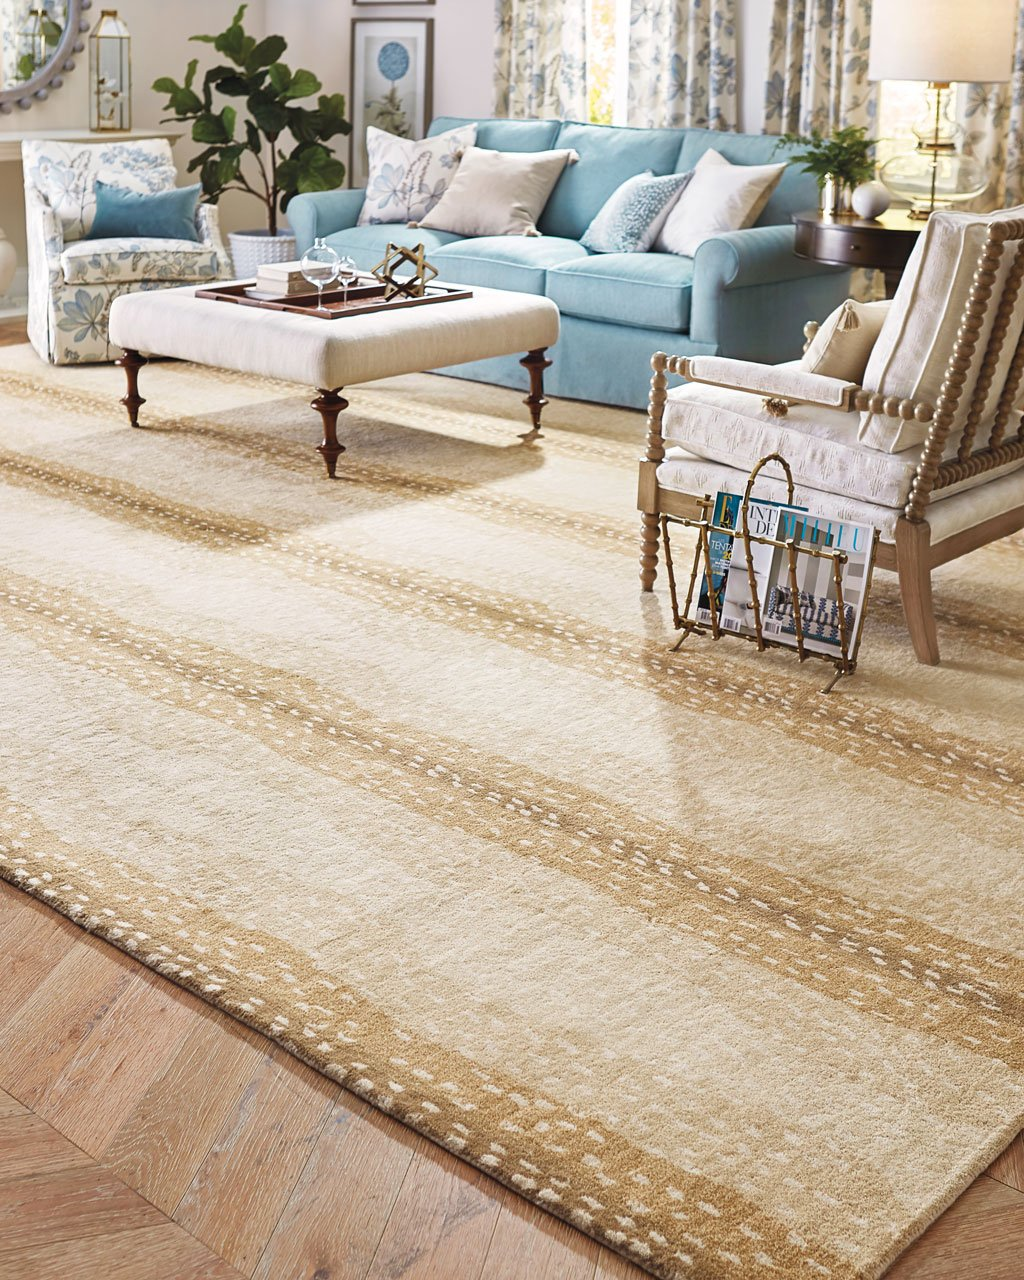 How To Choose The Right Rug, What Color Rug For Living Room